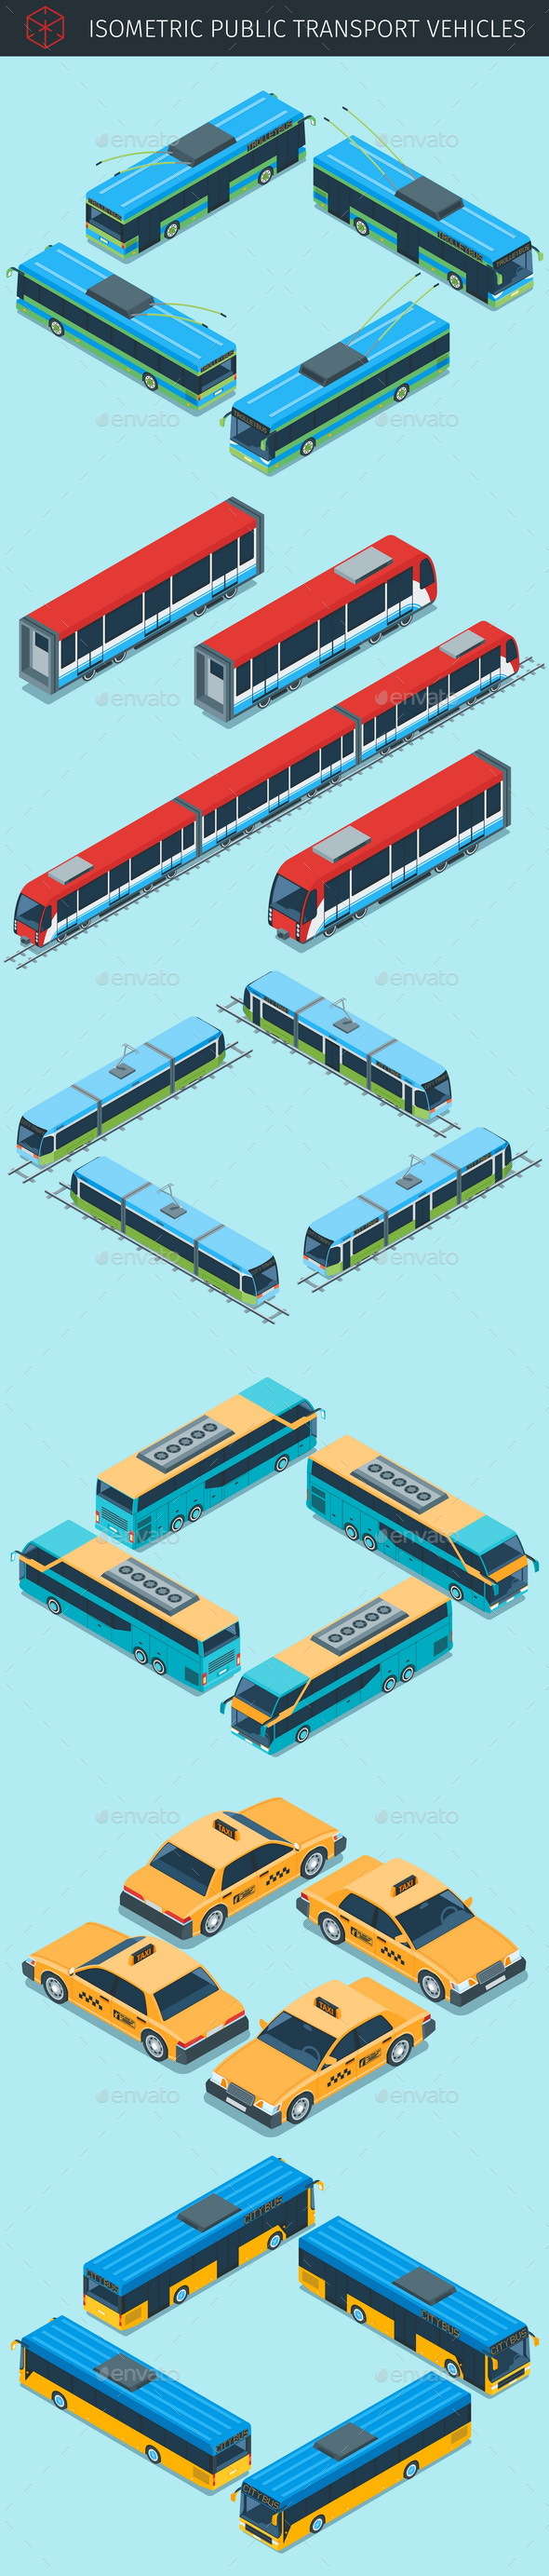 Isometric Public Transport Vehicles - Man-made Objects Objects